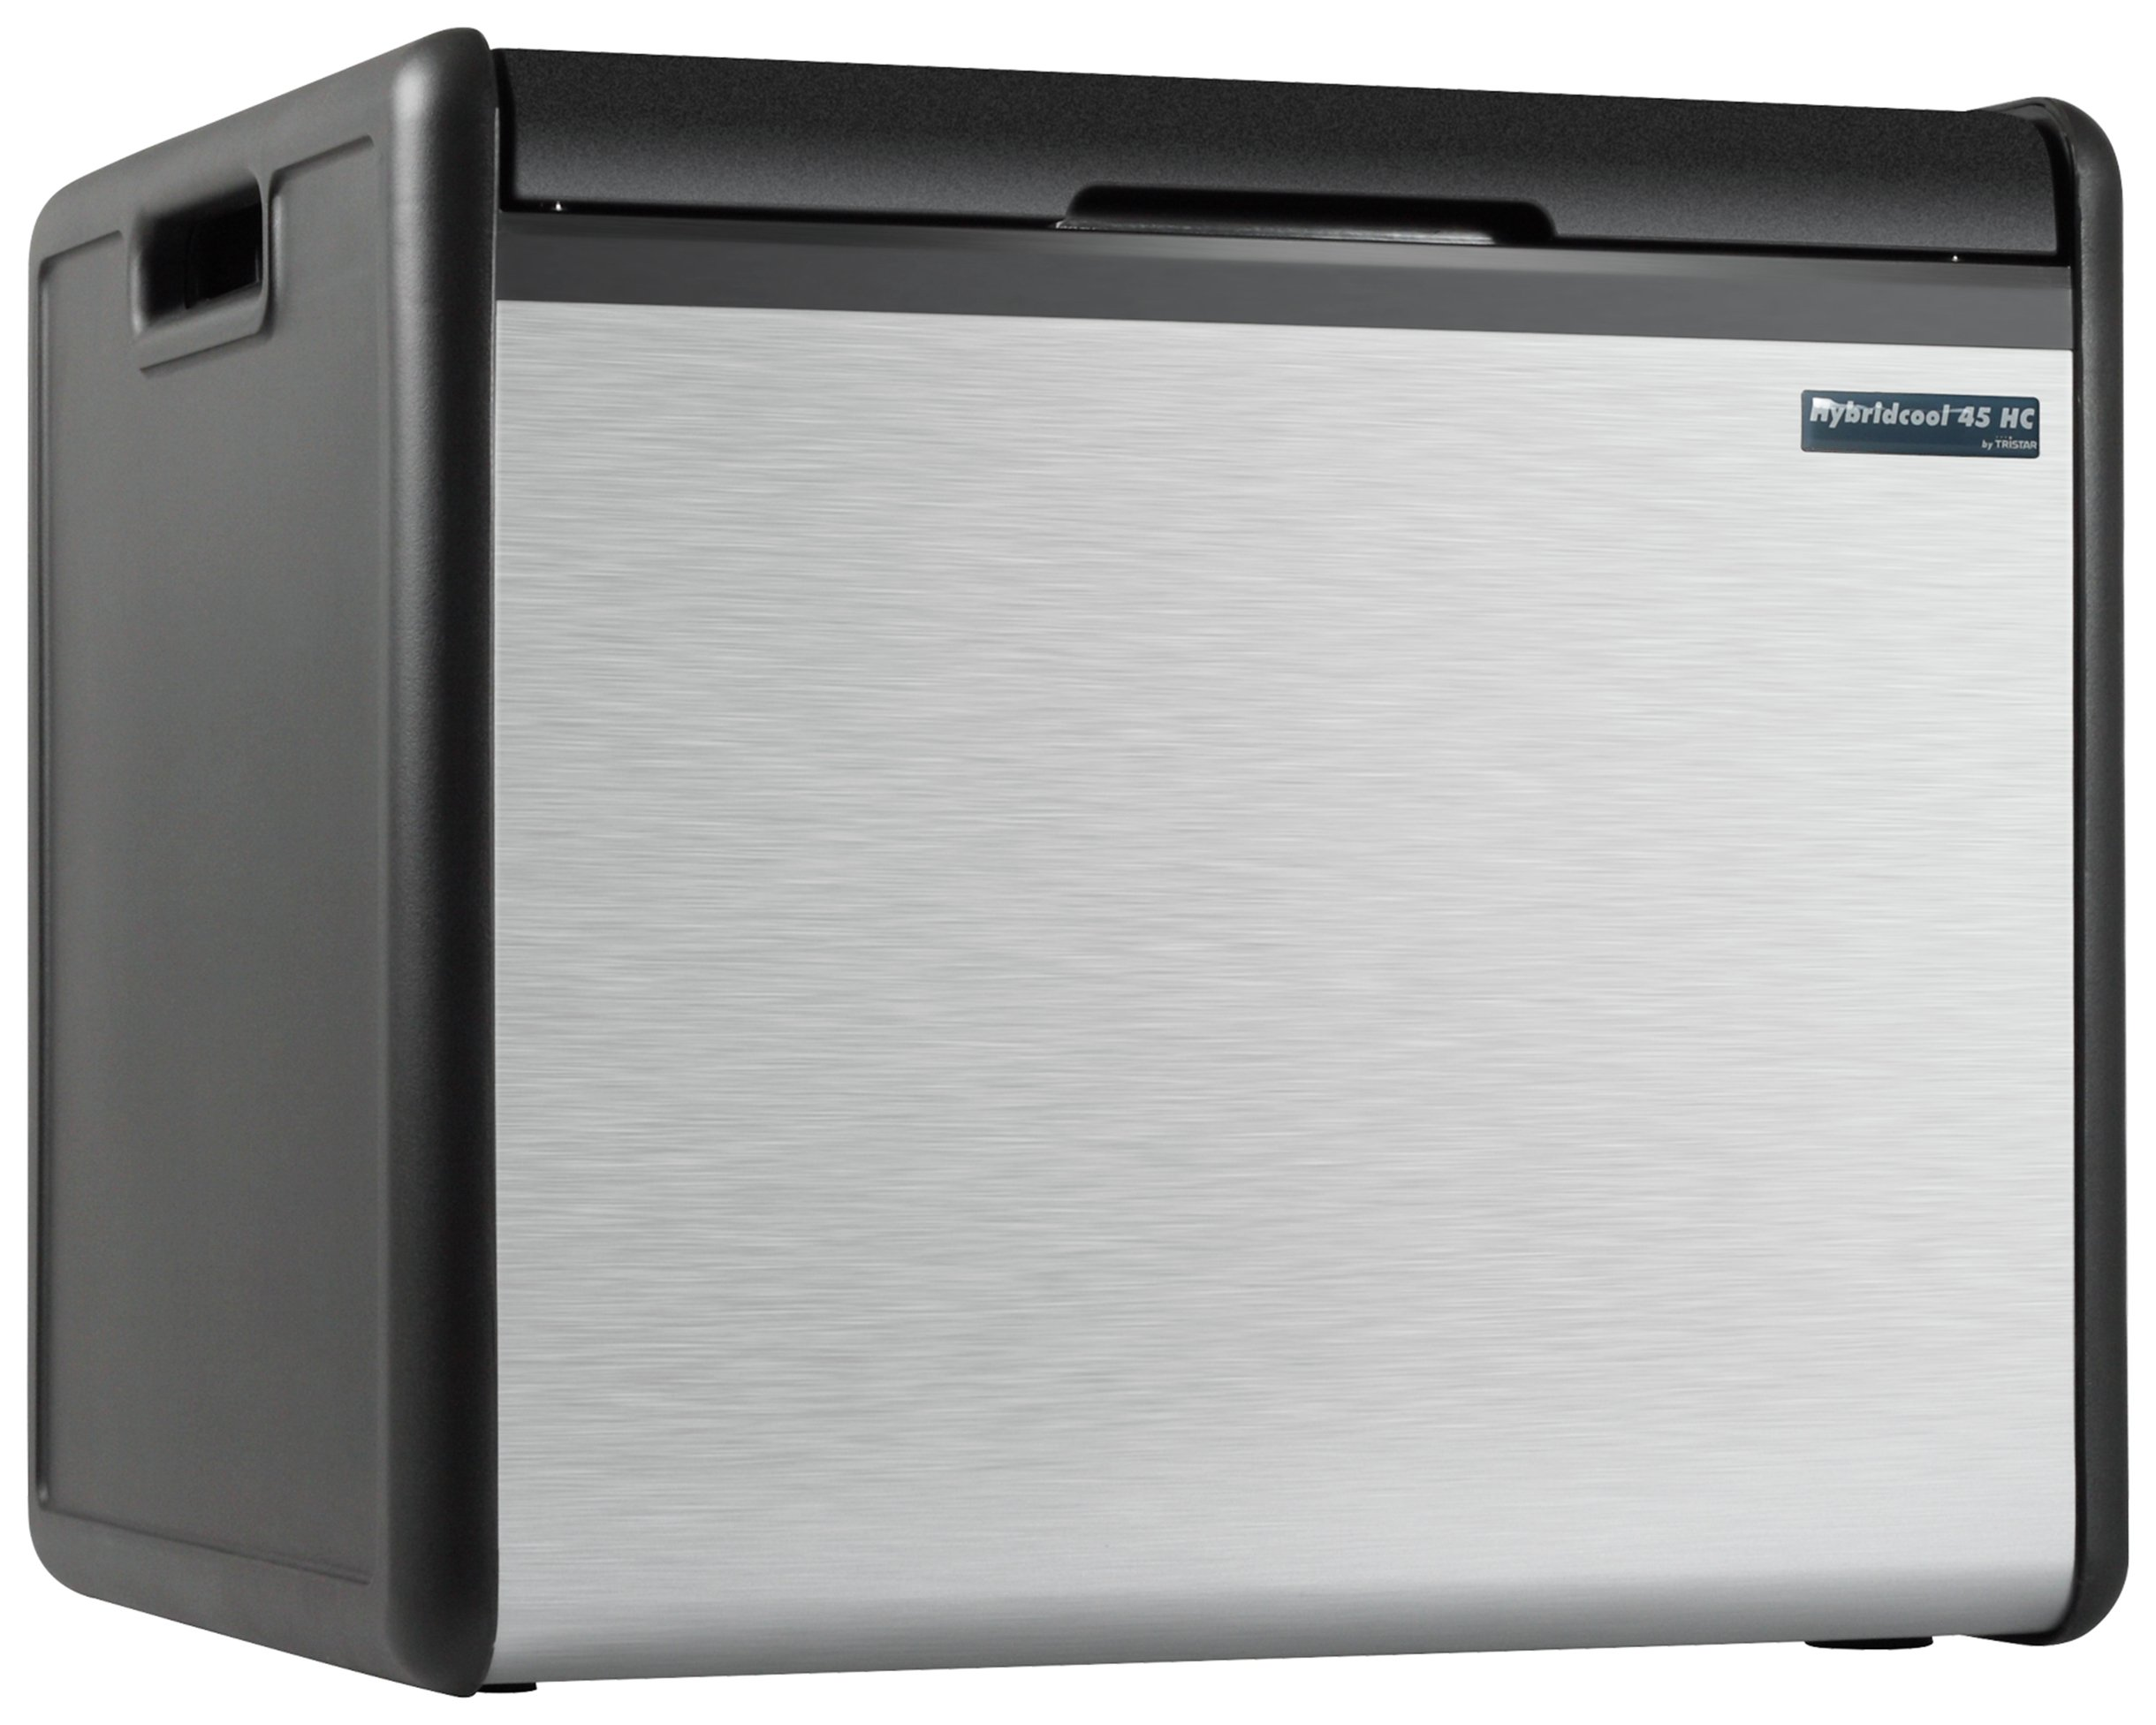 Cool Box buy tristar kb7645 41 litre cool box at argos.co.uk - your online